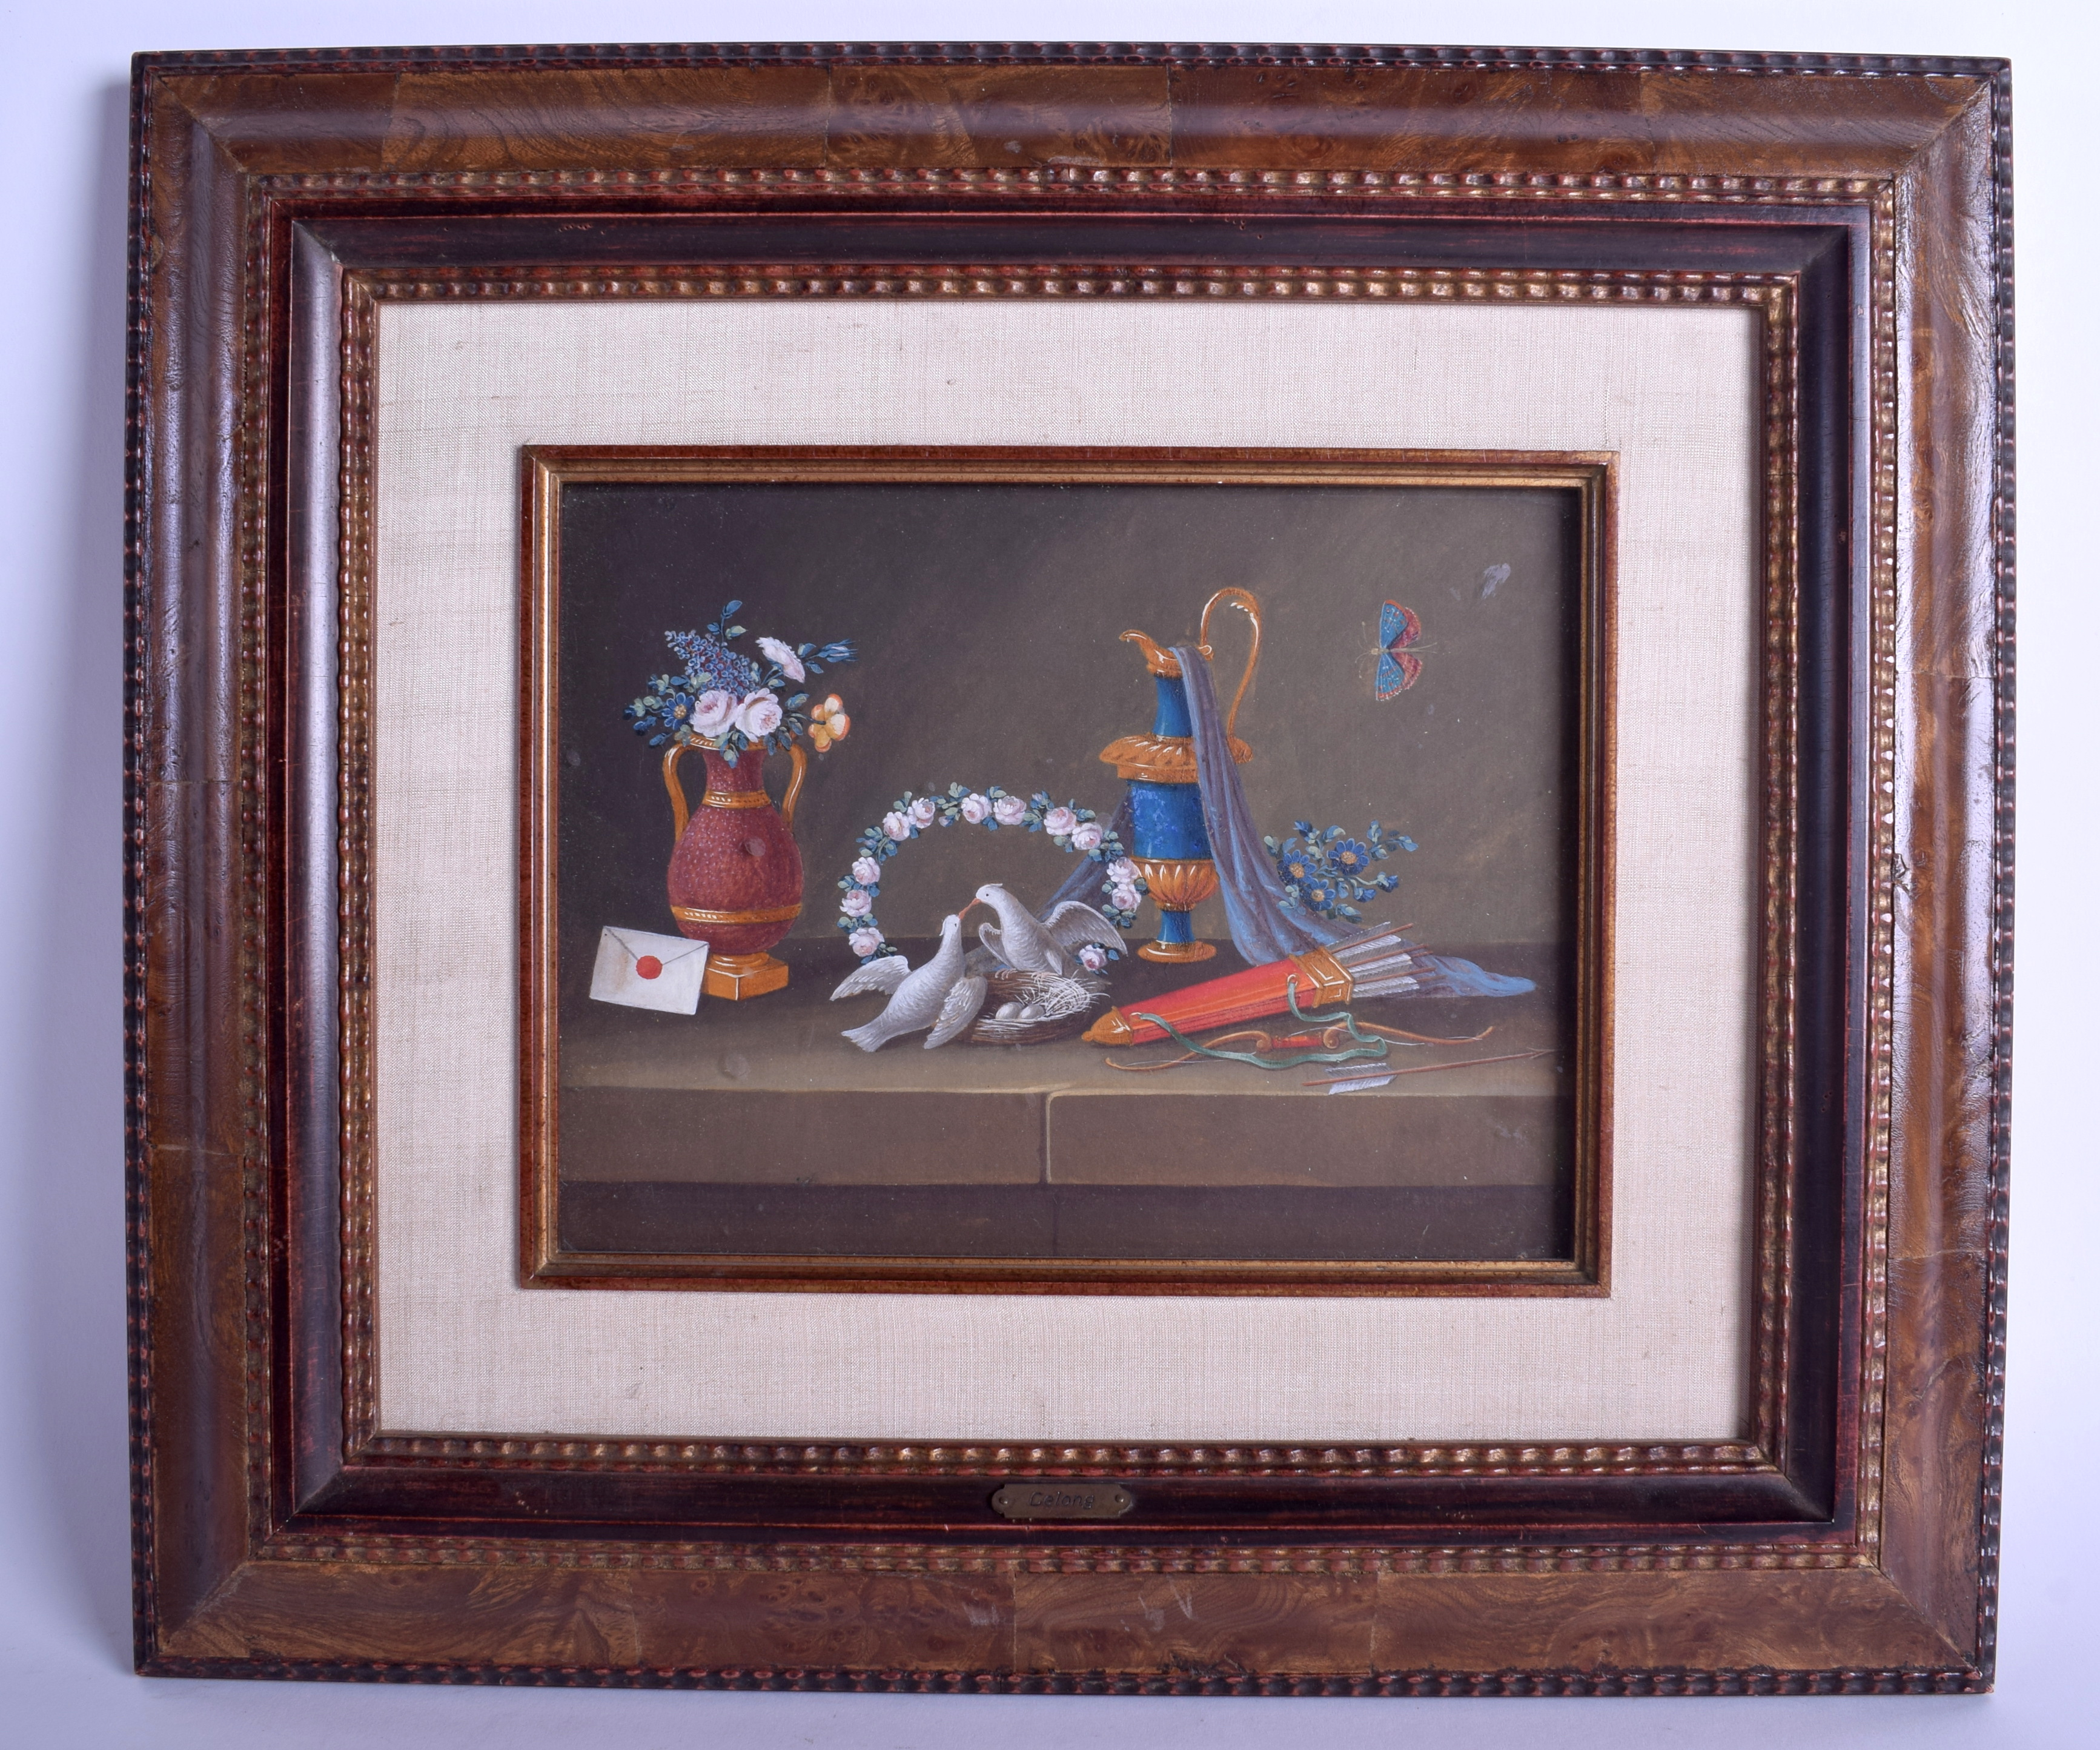 Lot 1659 - CHINESE SCHOOL (C1900) Framed Watercolour, Lelong, painted with love birds and French urns. Image 2